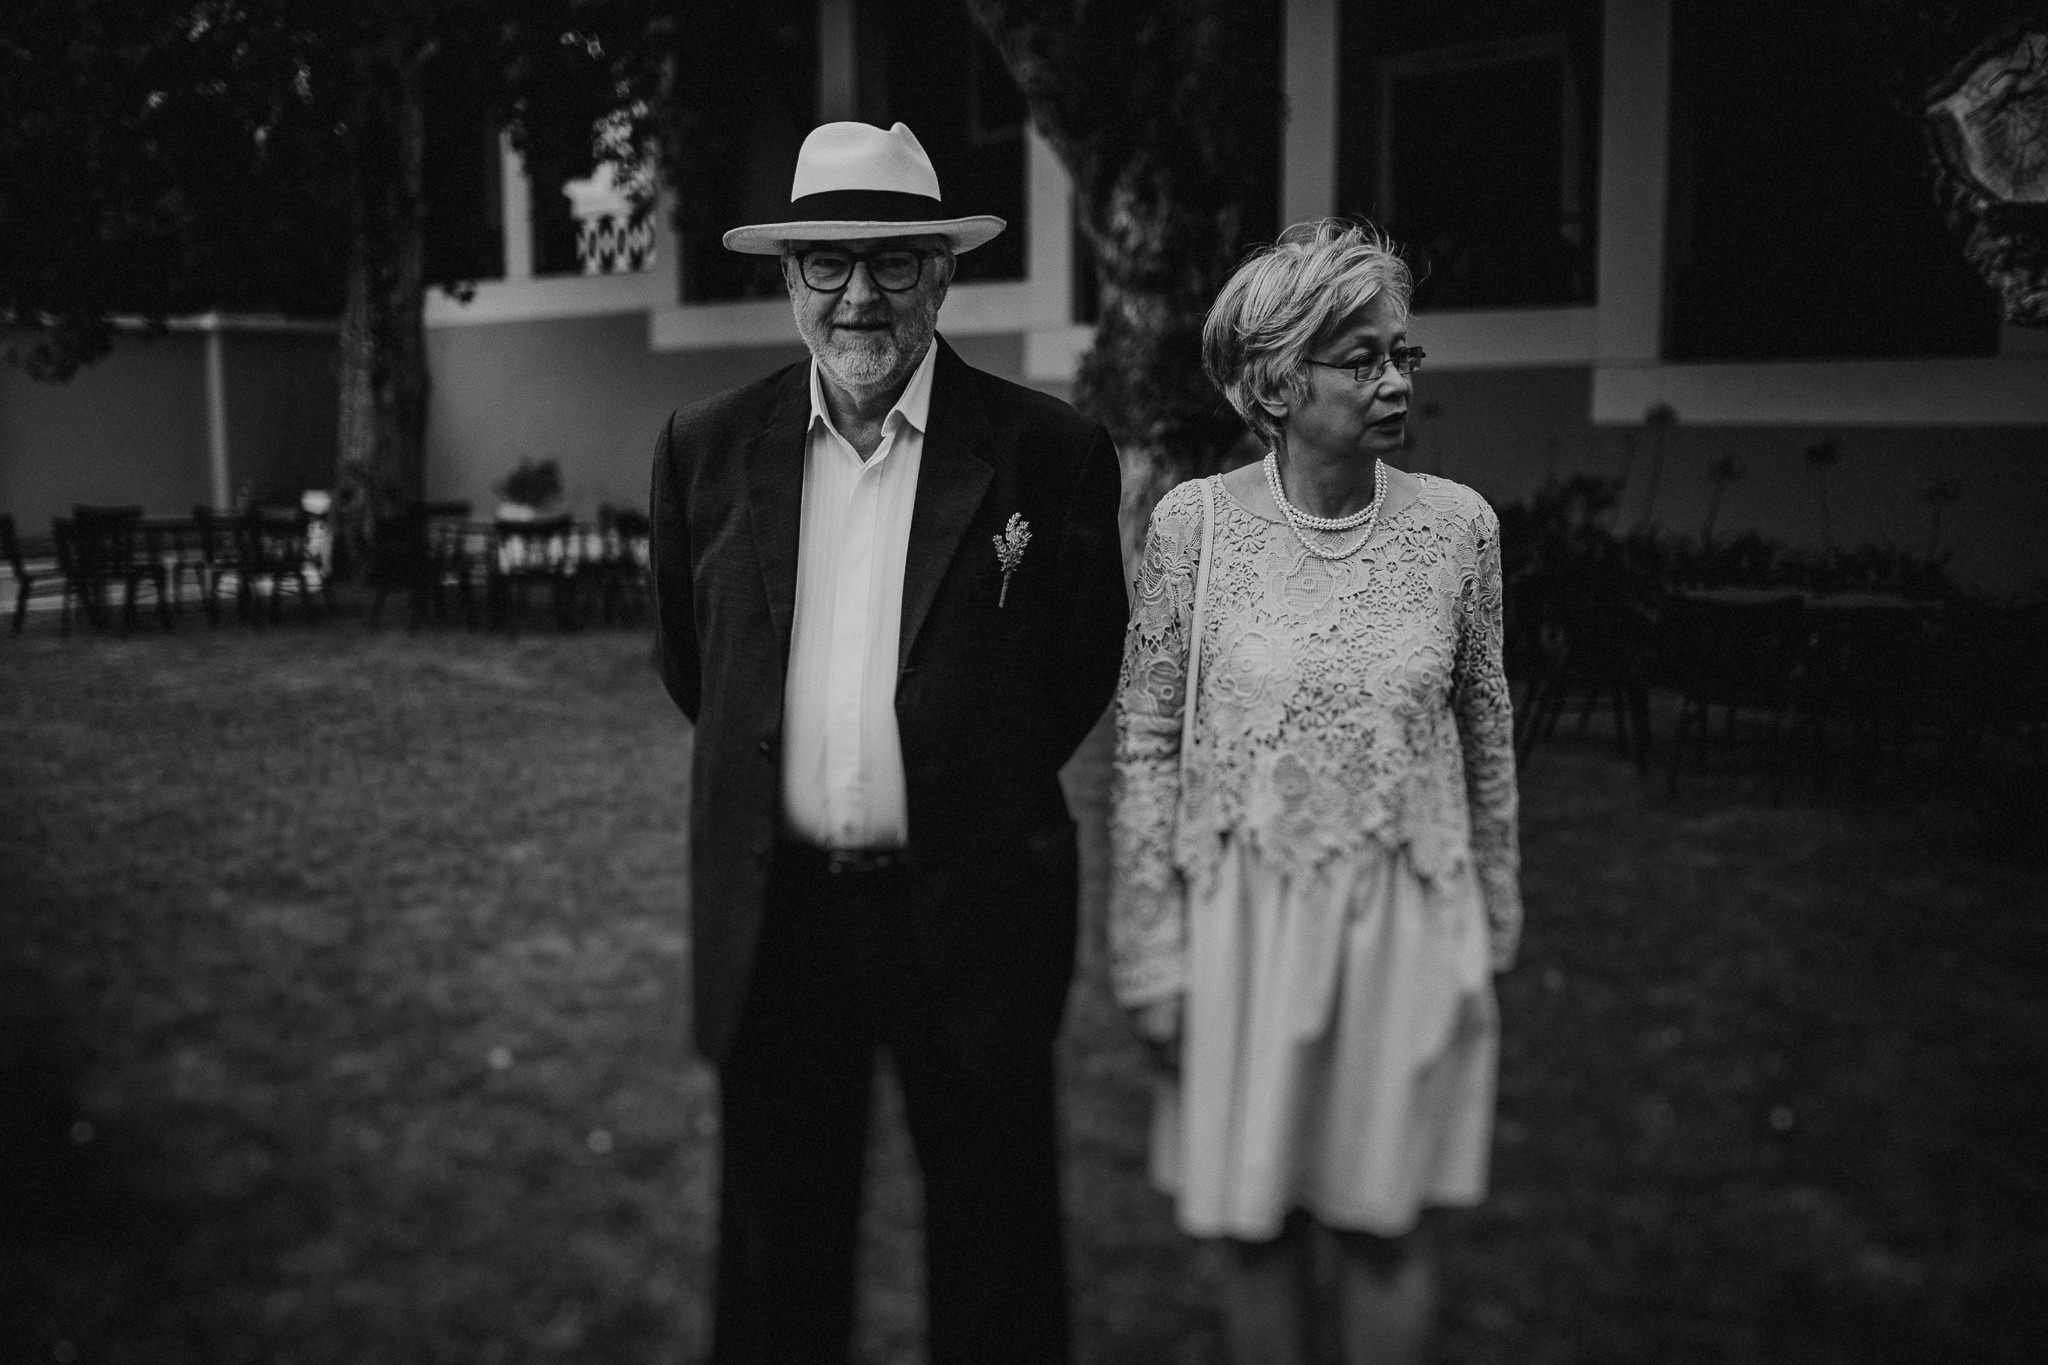 romina_thomas_destination_wedding_photography_fotografia_de_casamento_lisbon_sintra_penha_longa_resort-43